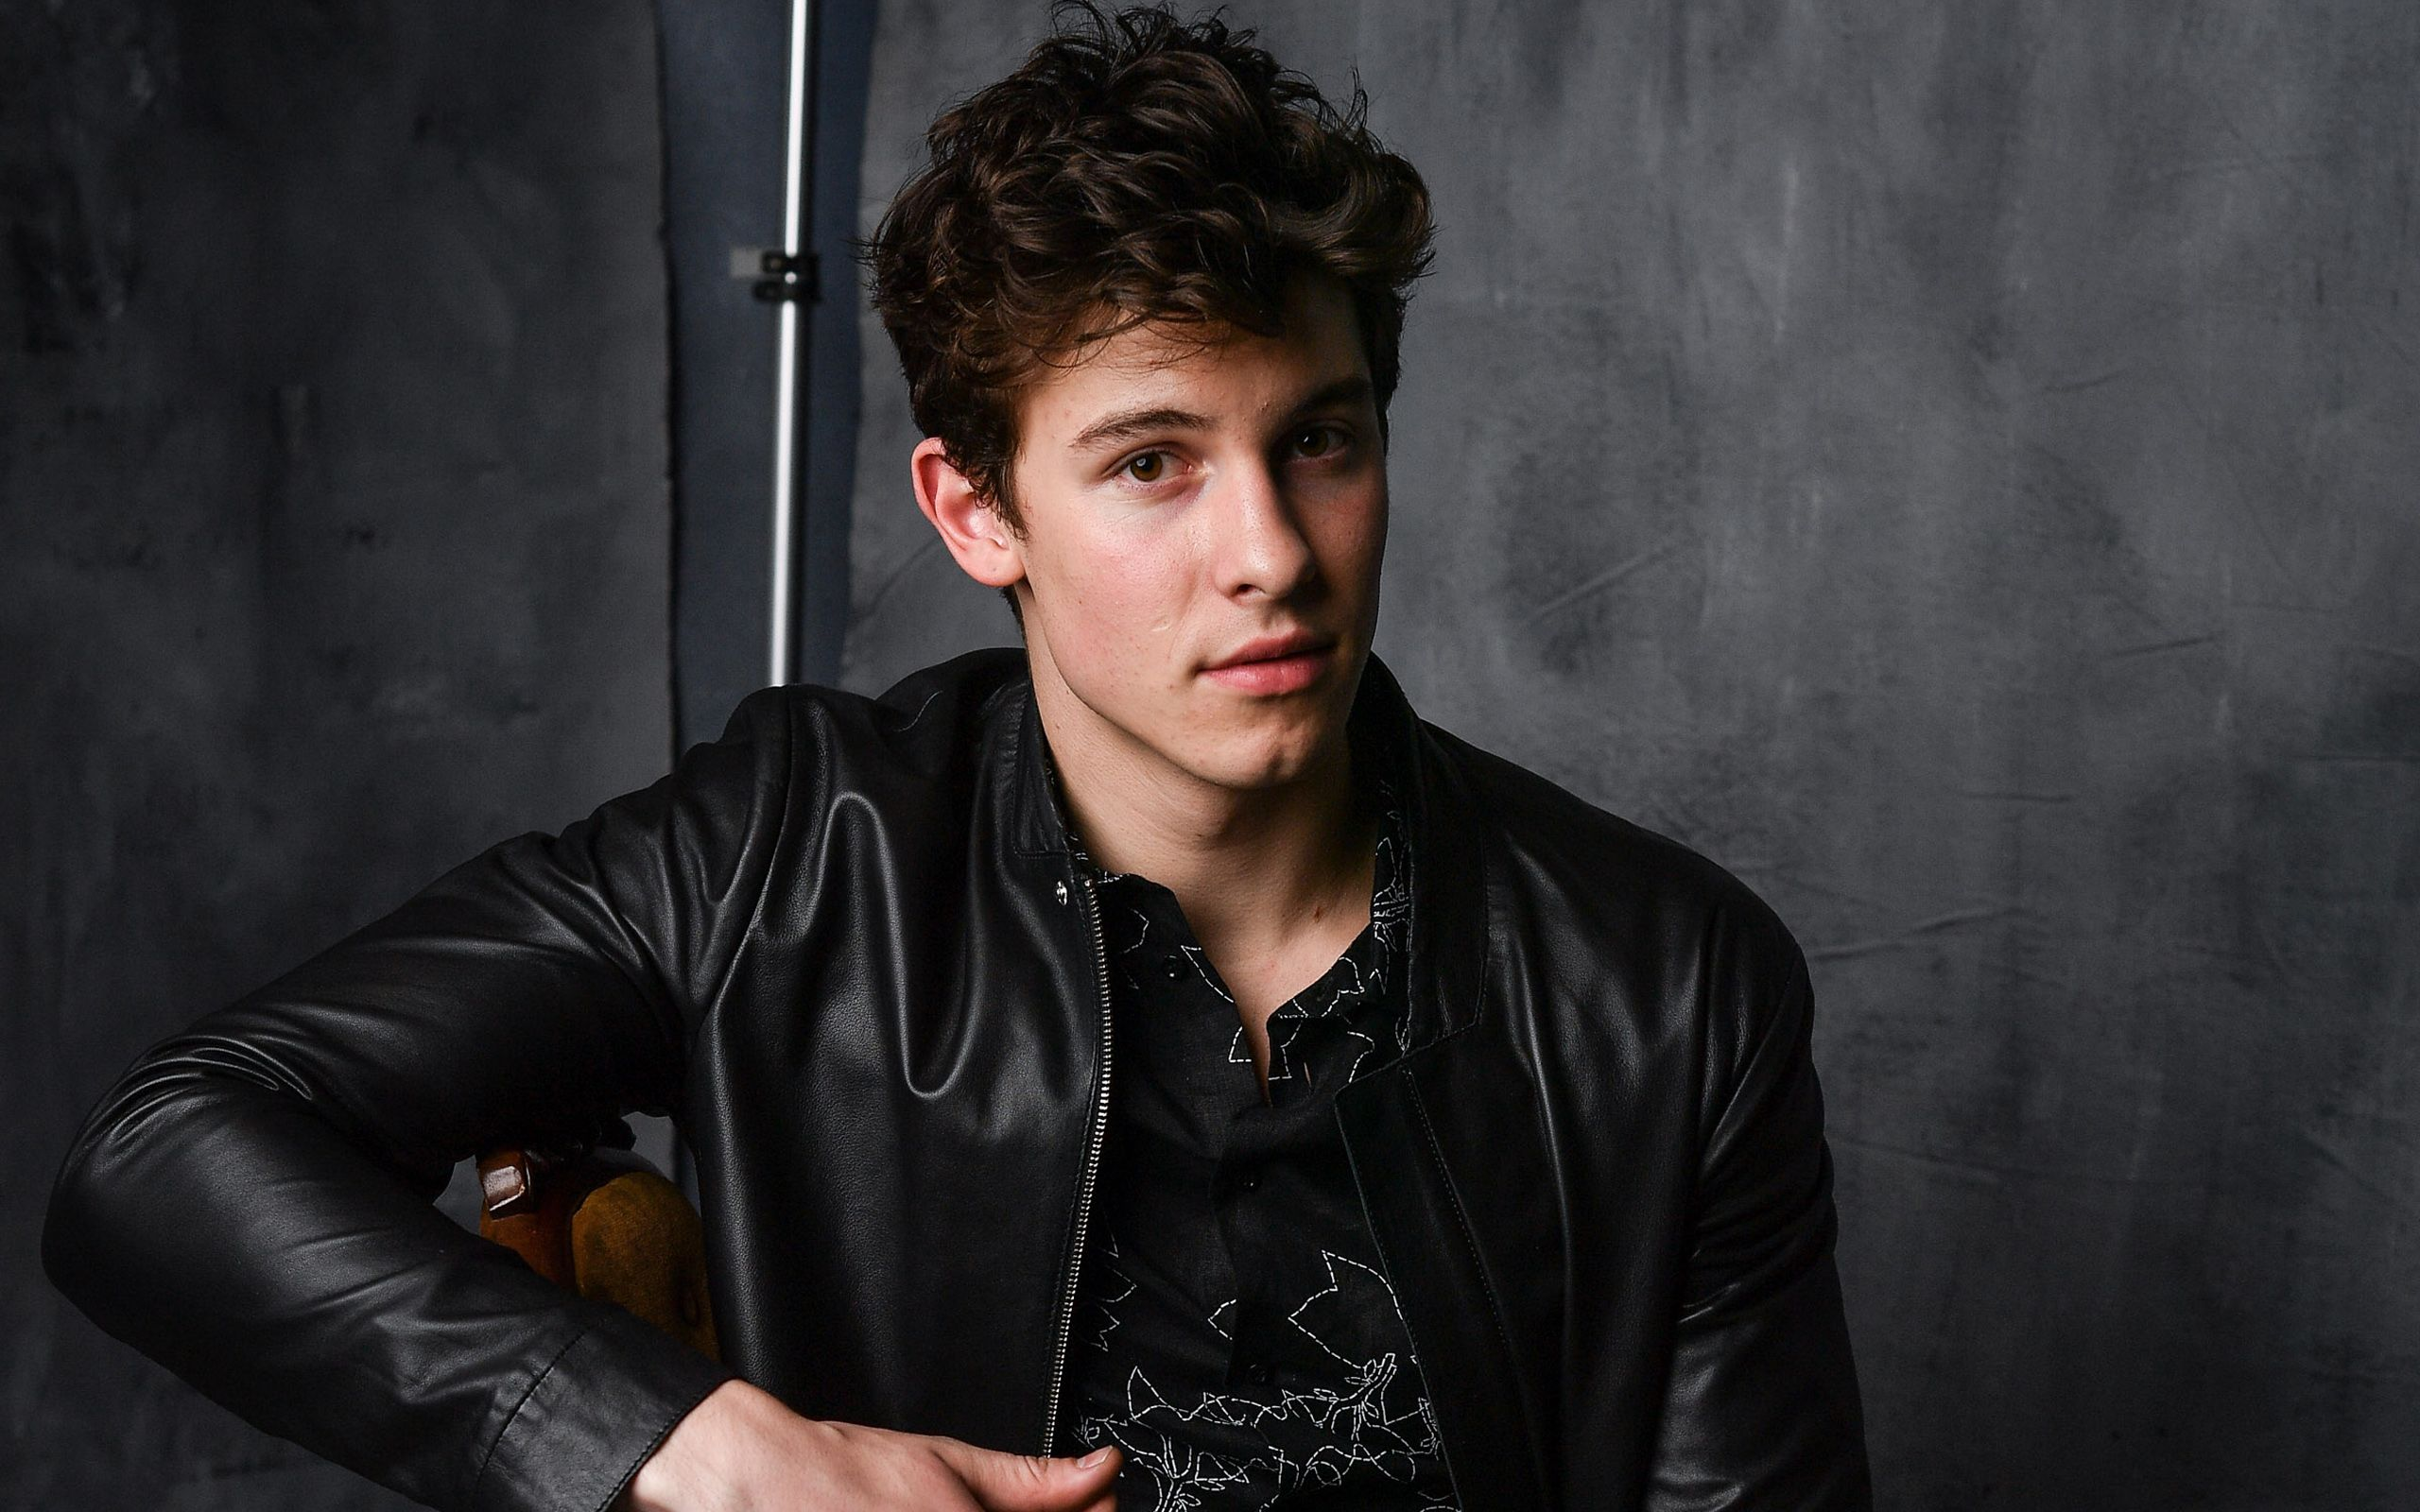 Shawn Mendes Wallpaper Hd Shawn Mendes Wallpaper Shawn